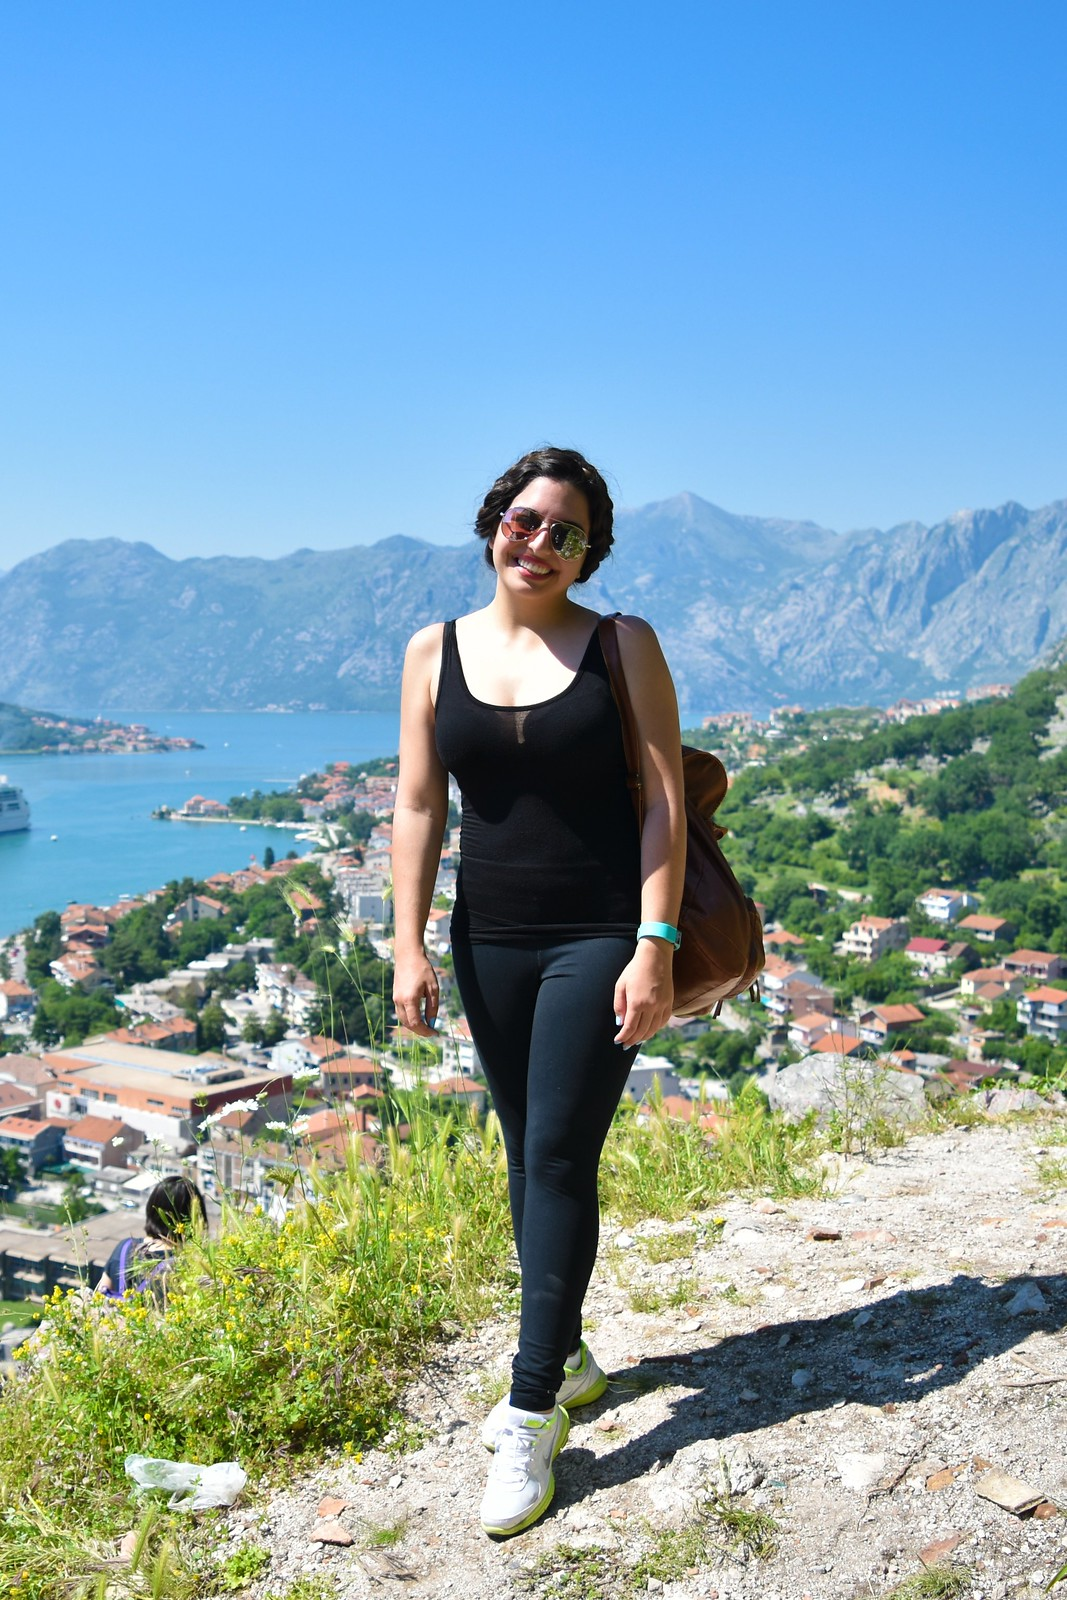 From the slope of St. John Mountain, Kotor, Montenegro